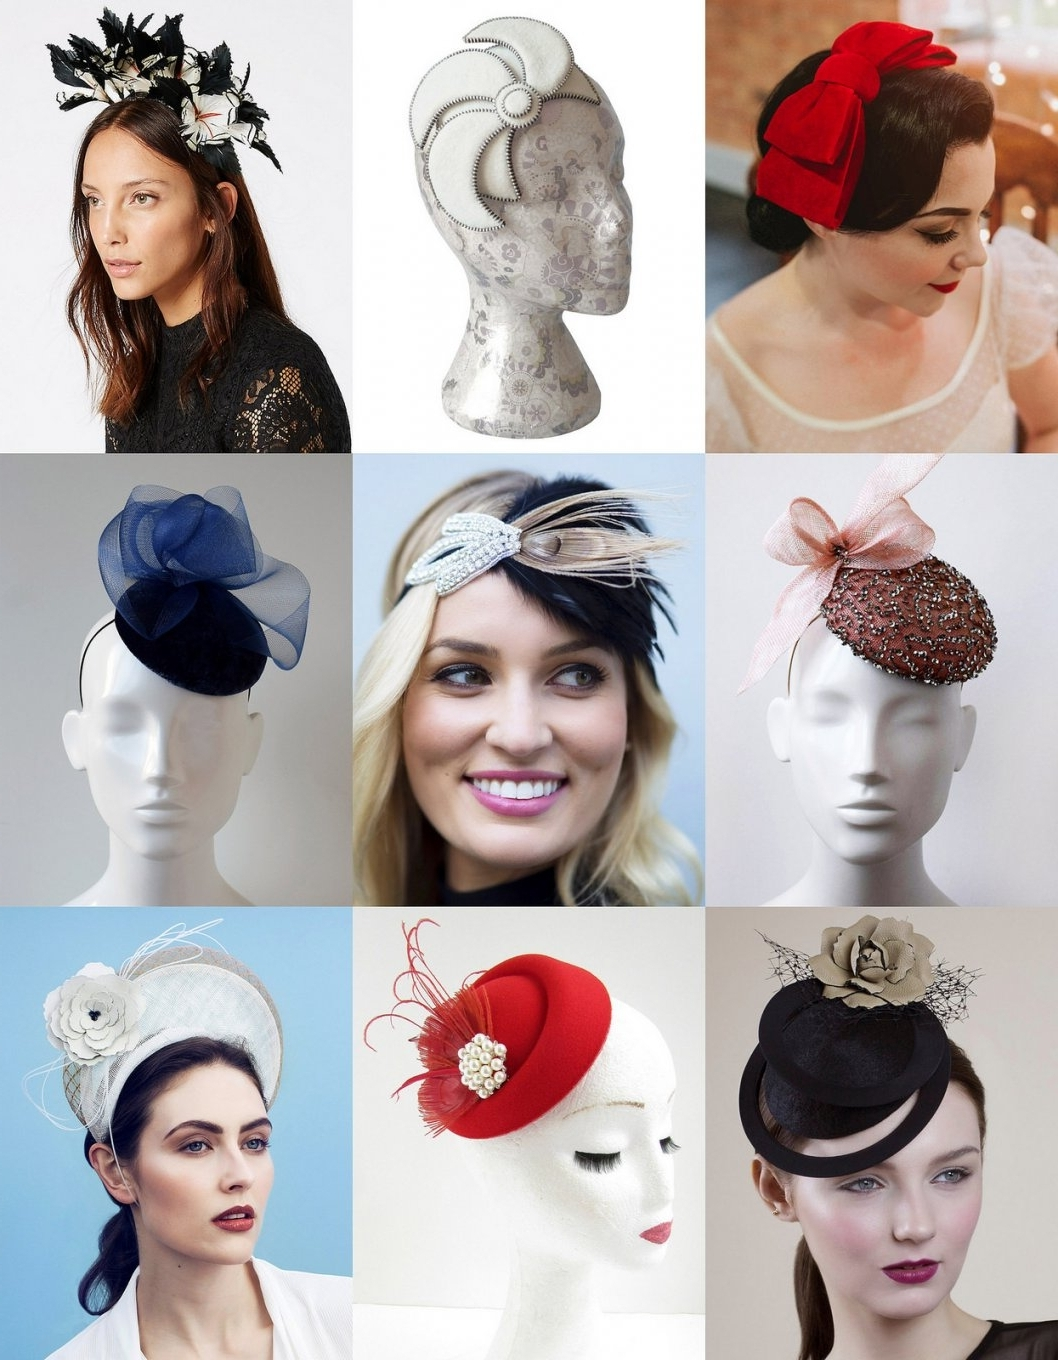 34 Modern Wedding Guest Hats And Fascinators #saturdaysharelinkup Within Trendy Wedding Guest Hairstyles For Long Hair With Fascinator (View 14 of 15)